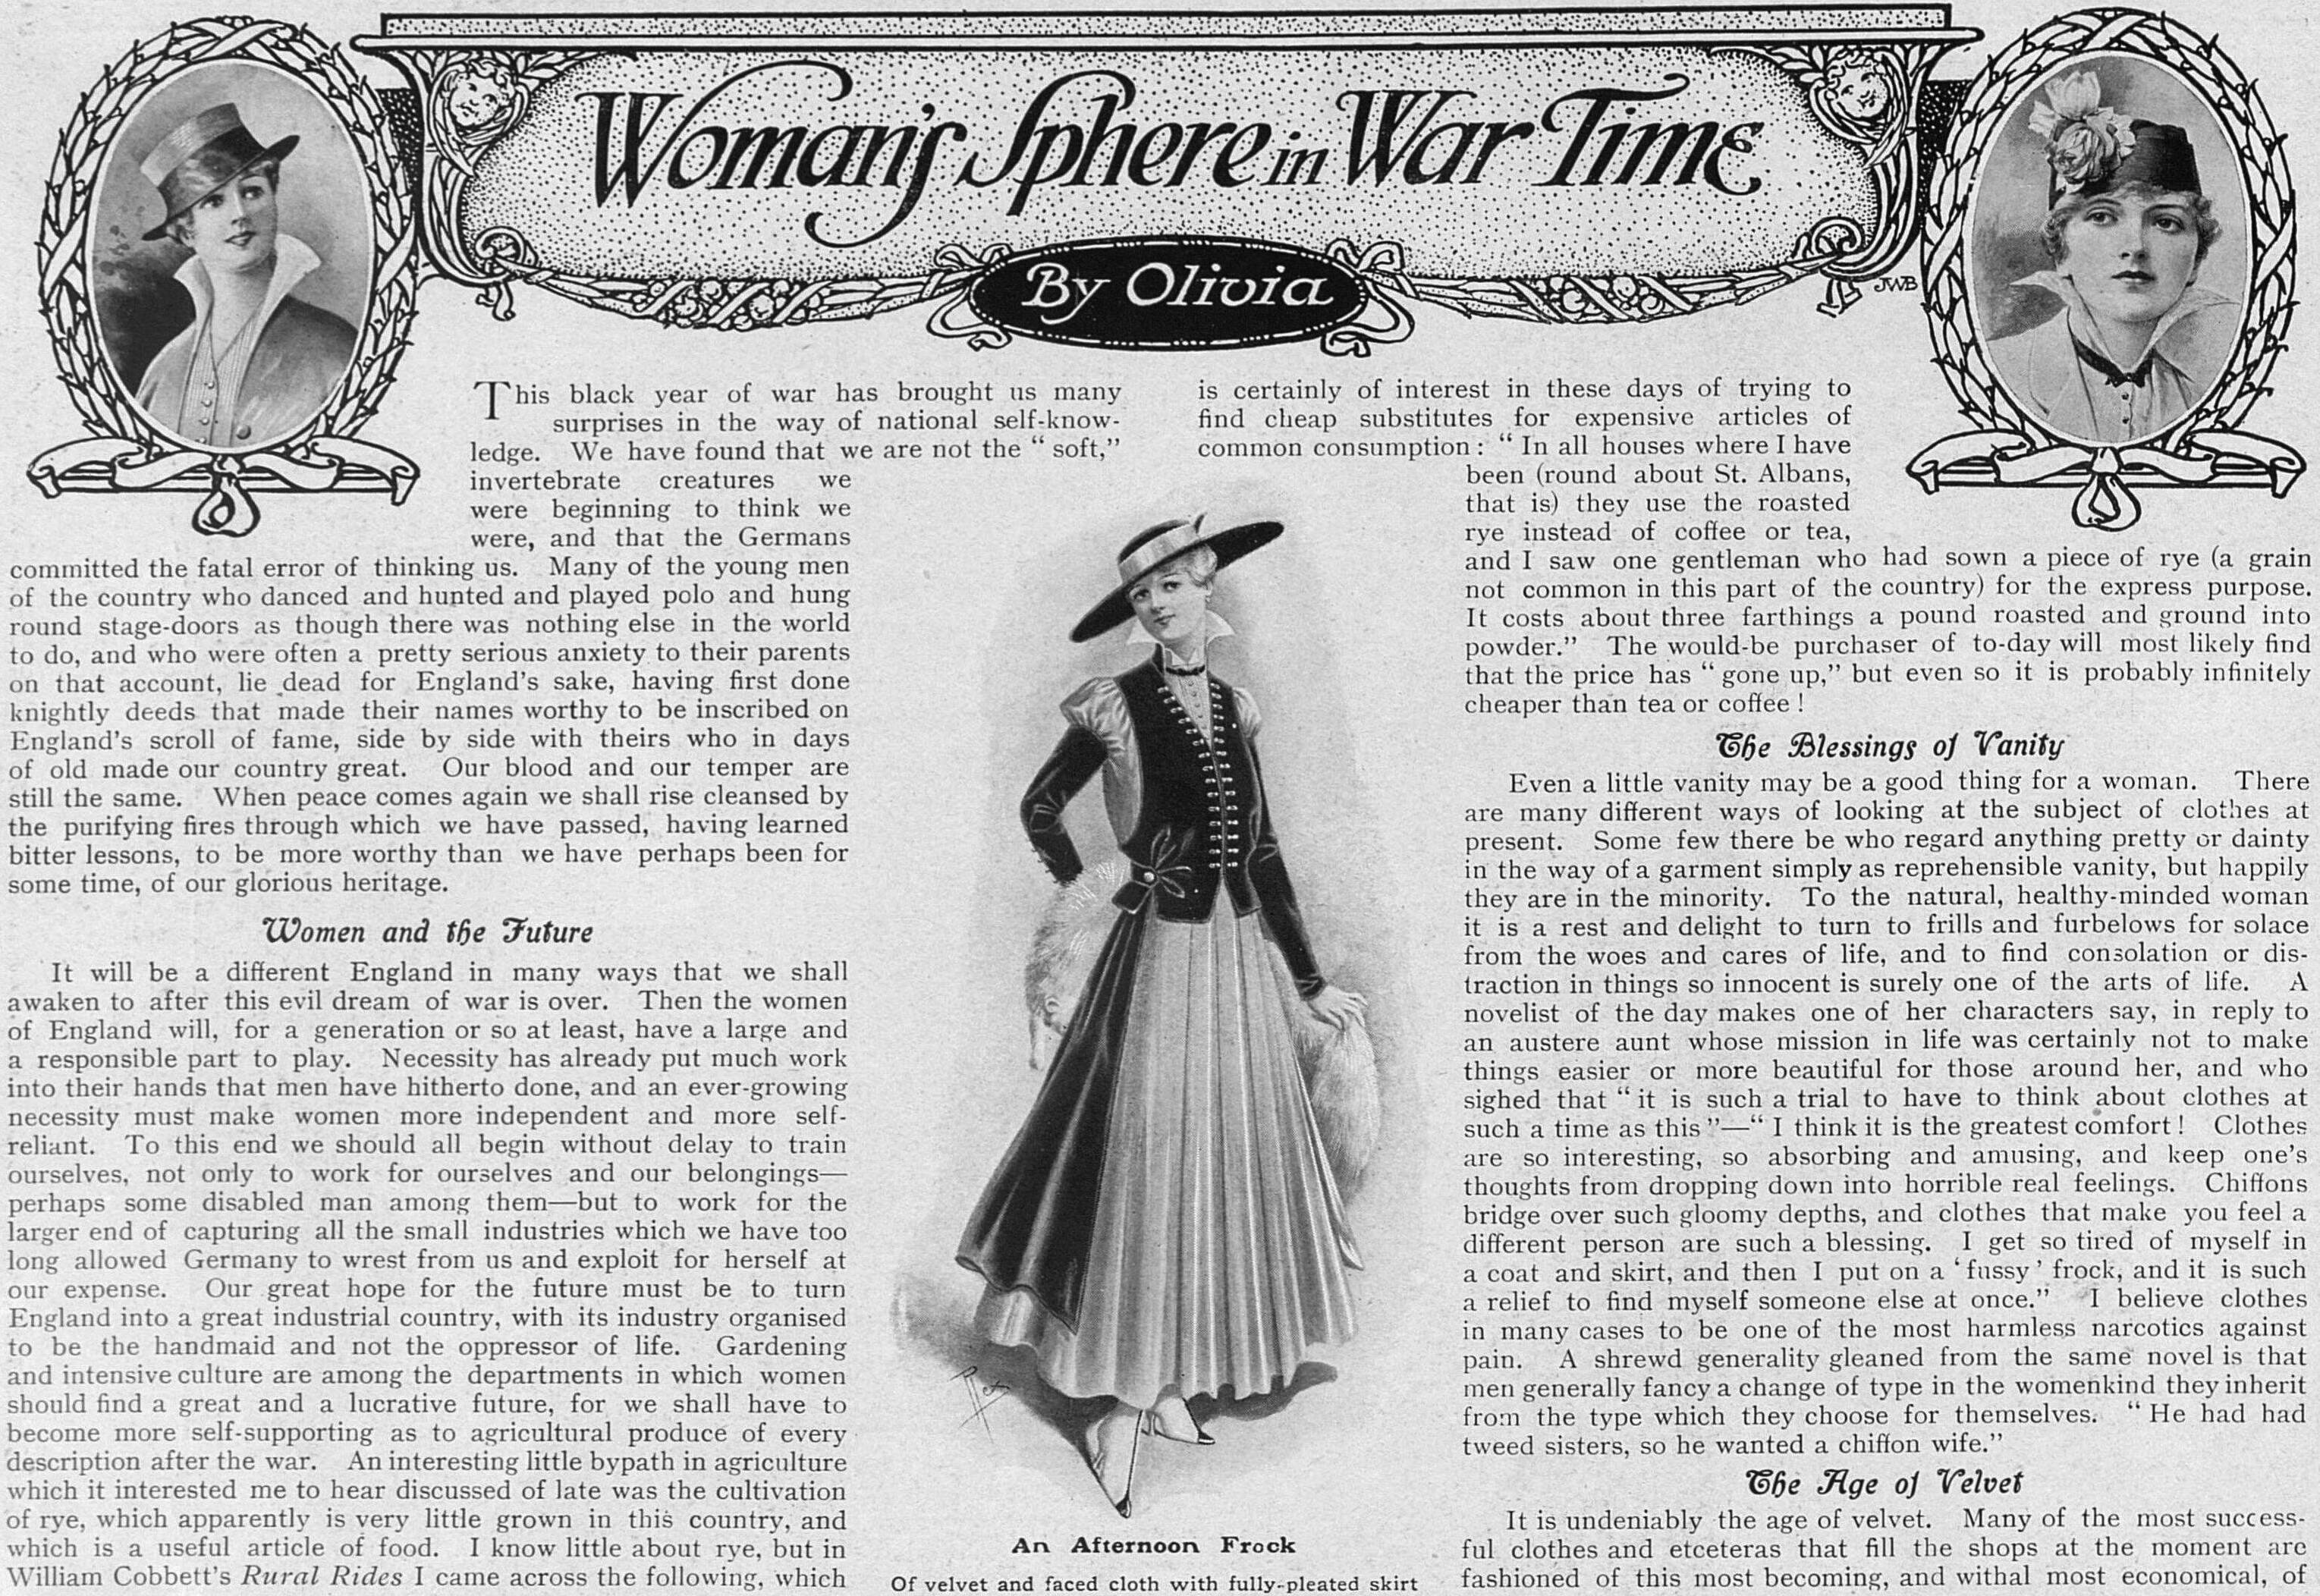 WomansSphereInWarTime_30Oct1915